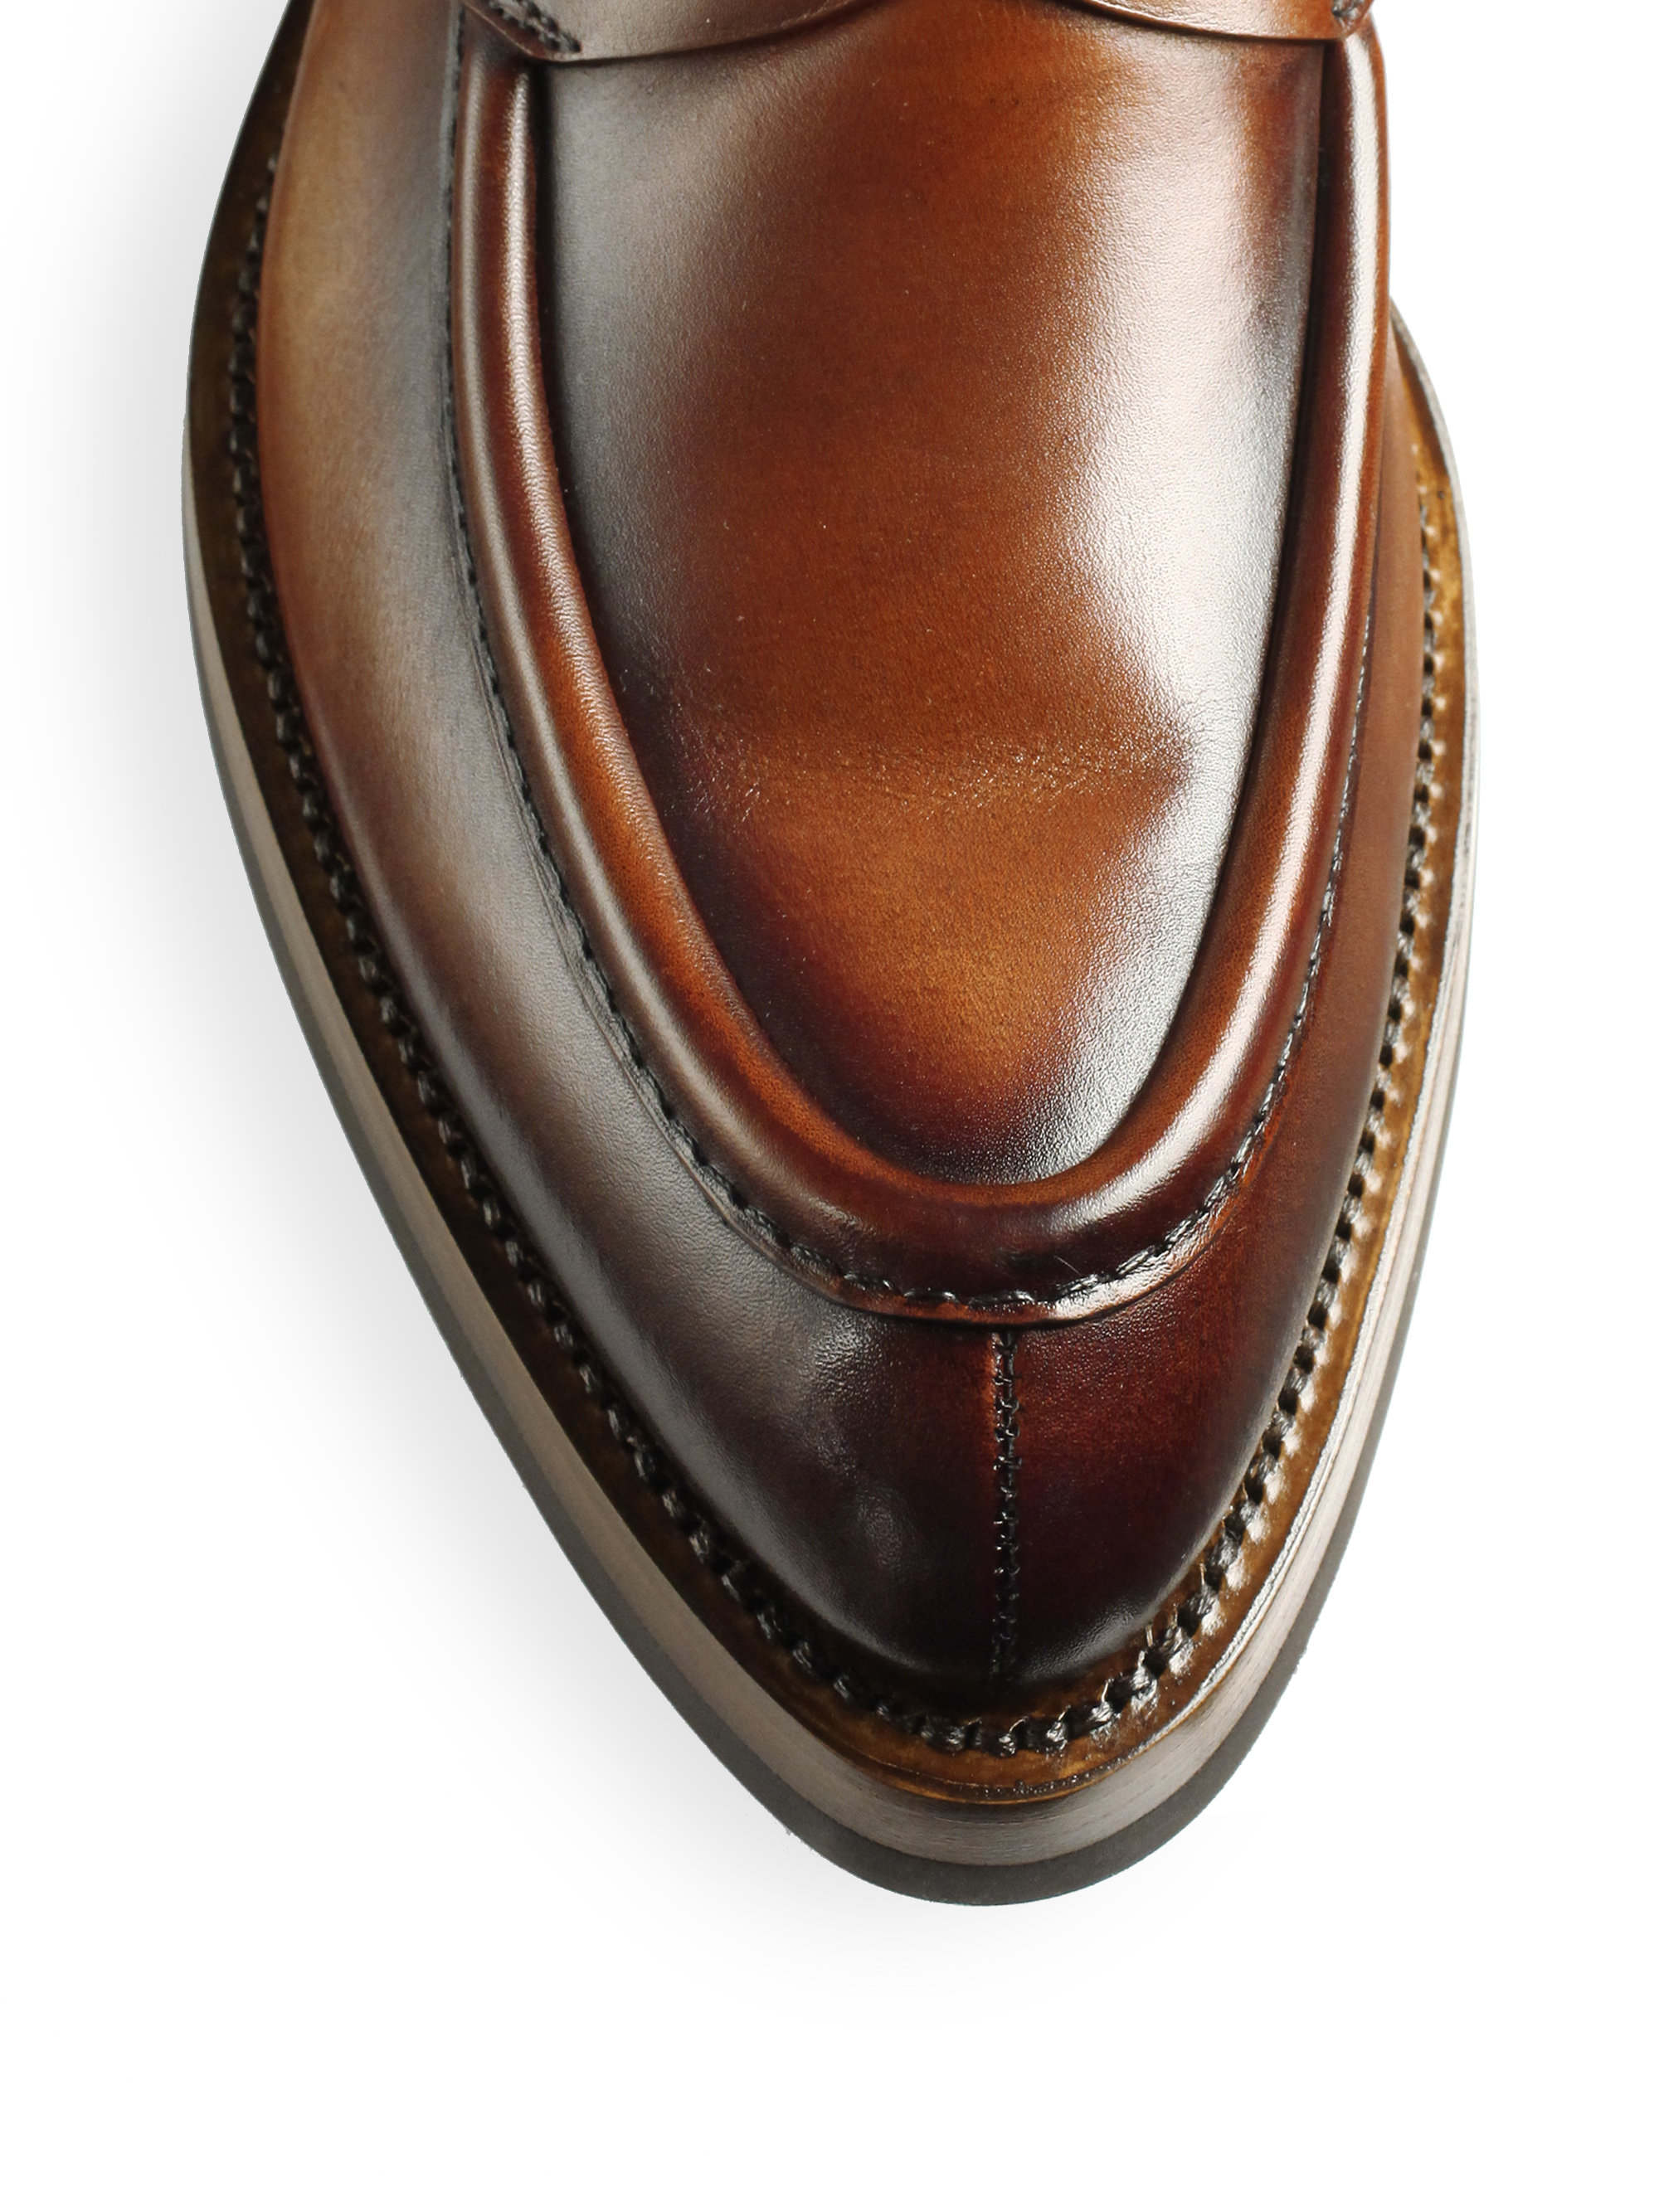 a6cd4bf93b5 ... discount code for lyst prada runway penny loafers in brown for men  c8098 9a4c9